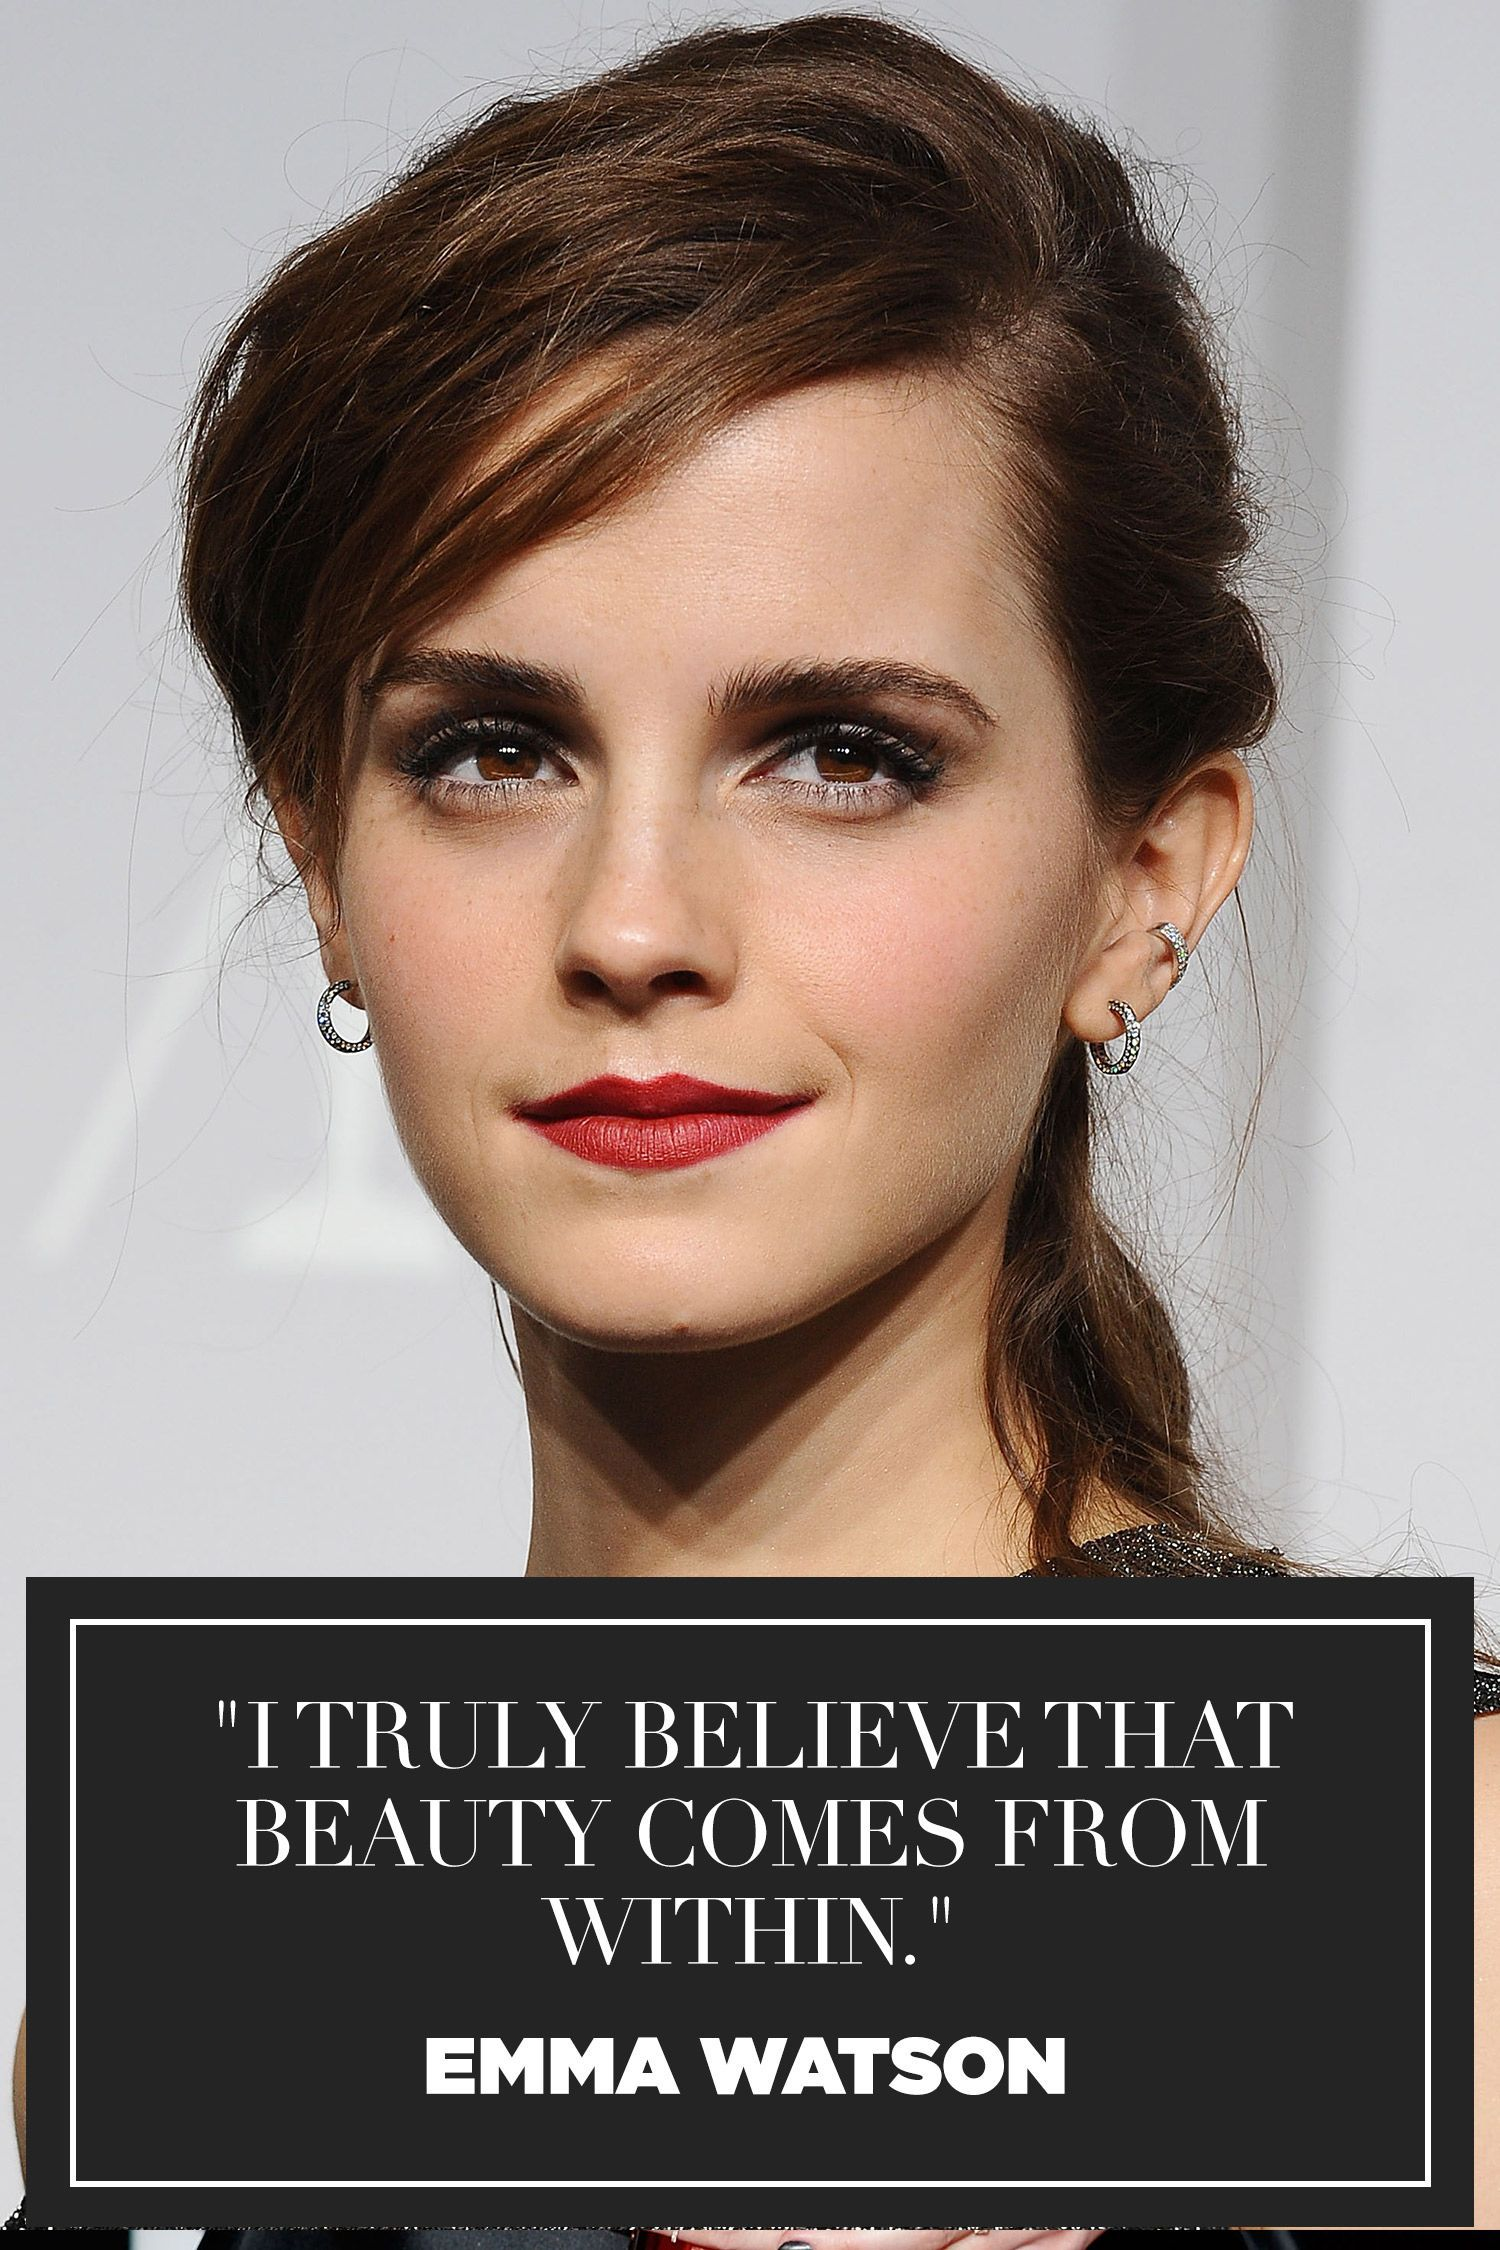 19 Emma Watson Quotes That Will Inspire You Emma Watson